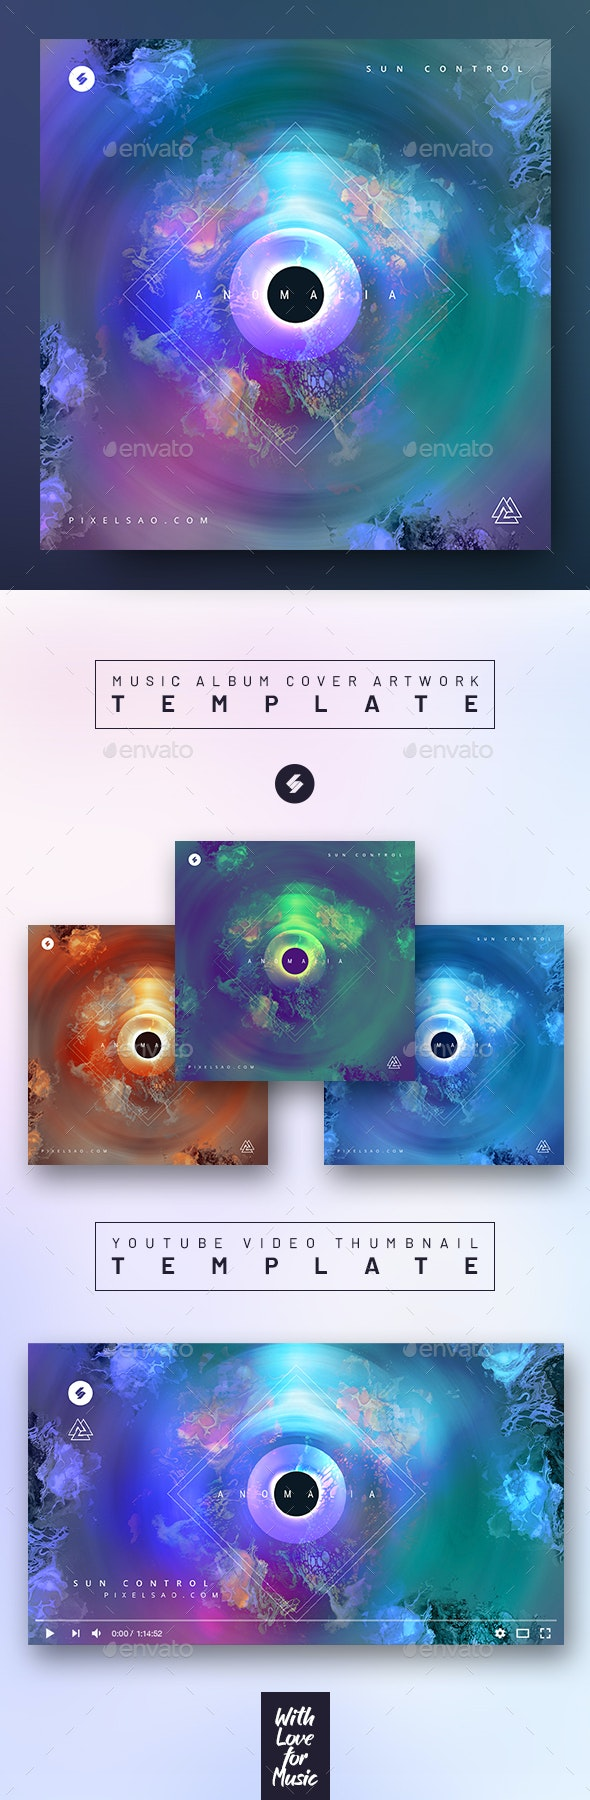 Anomalia – Music Album Cover Artwork / Video Thumbnail Template - Miscellaneous Social Media